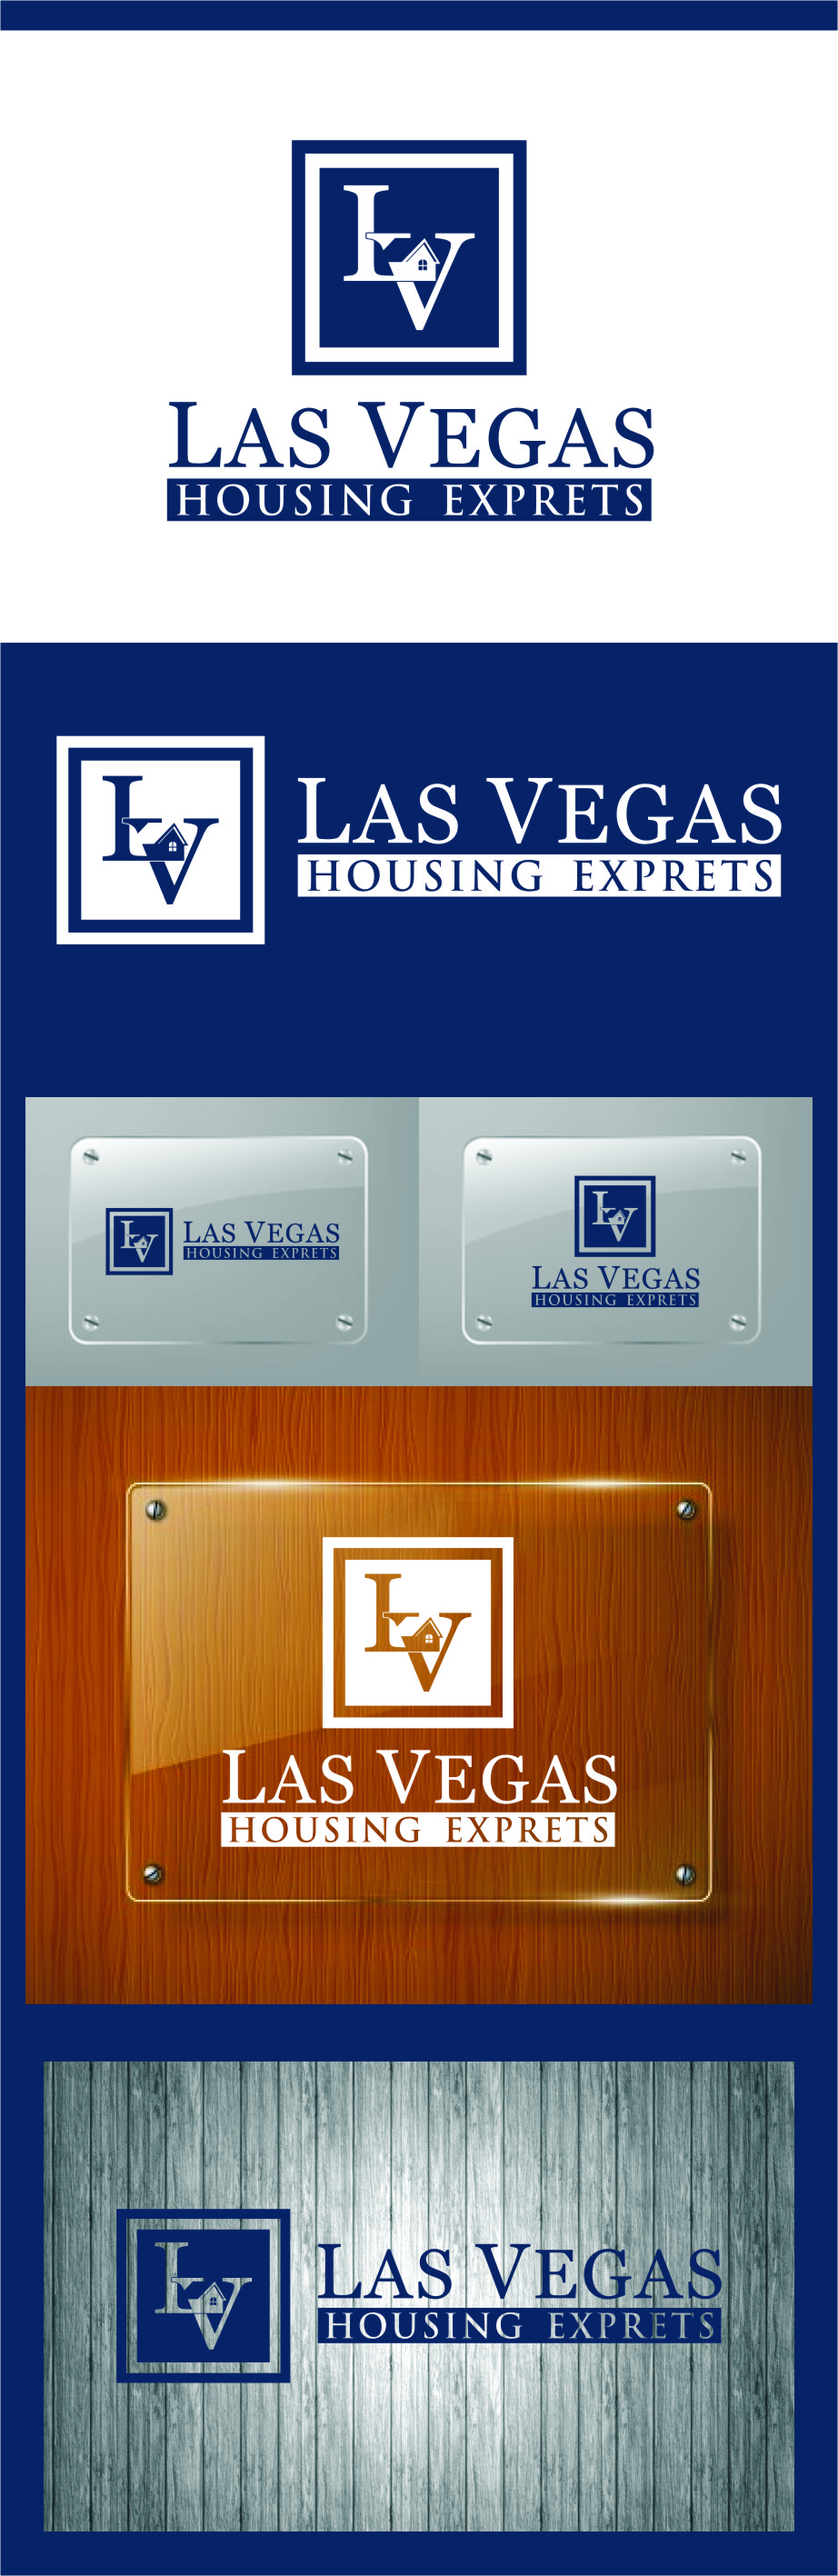 Logo Design by Ngepet_art - Entry No. 127 in the Logo Design Contest Las Vegas Housing Experts Logo Design.